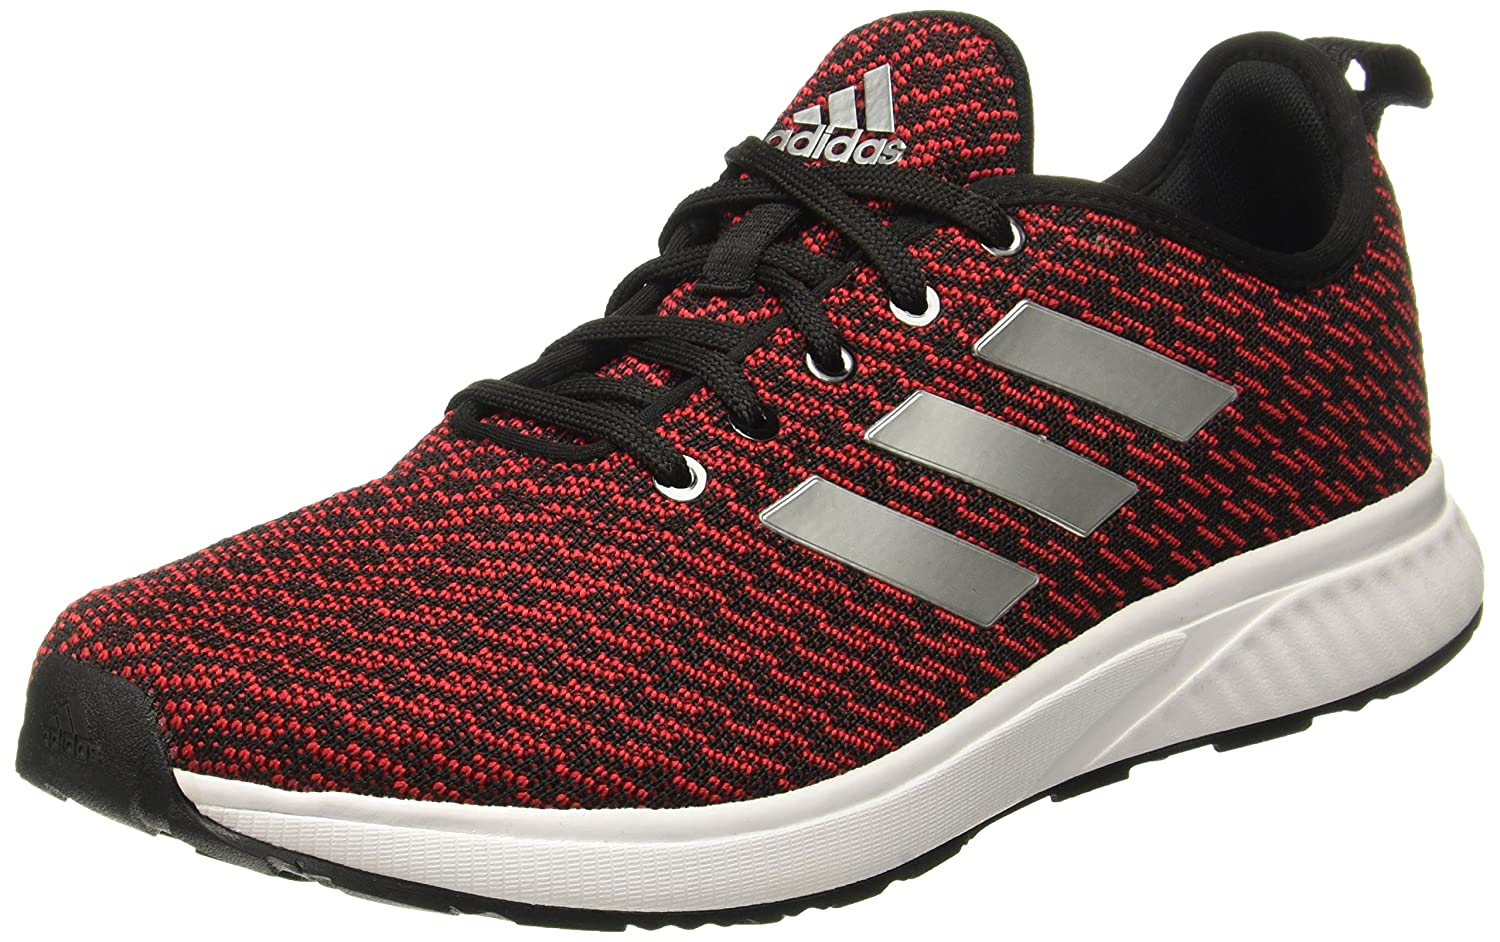 Shoes 1 Running Kivaro M Adidas Men's rodCxBe